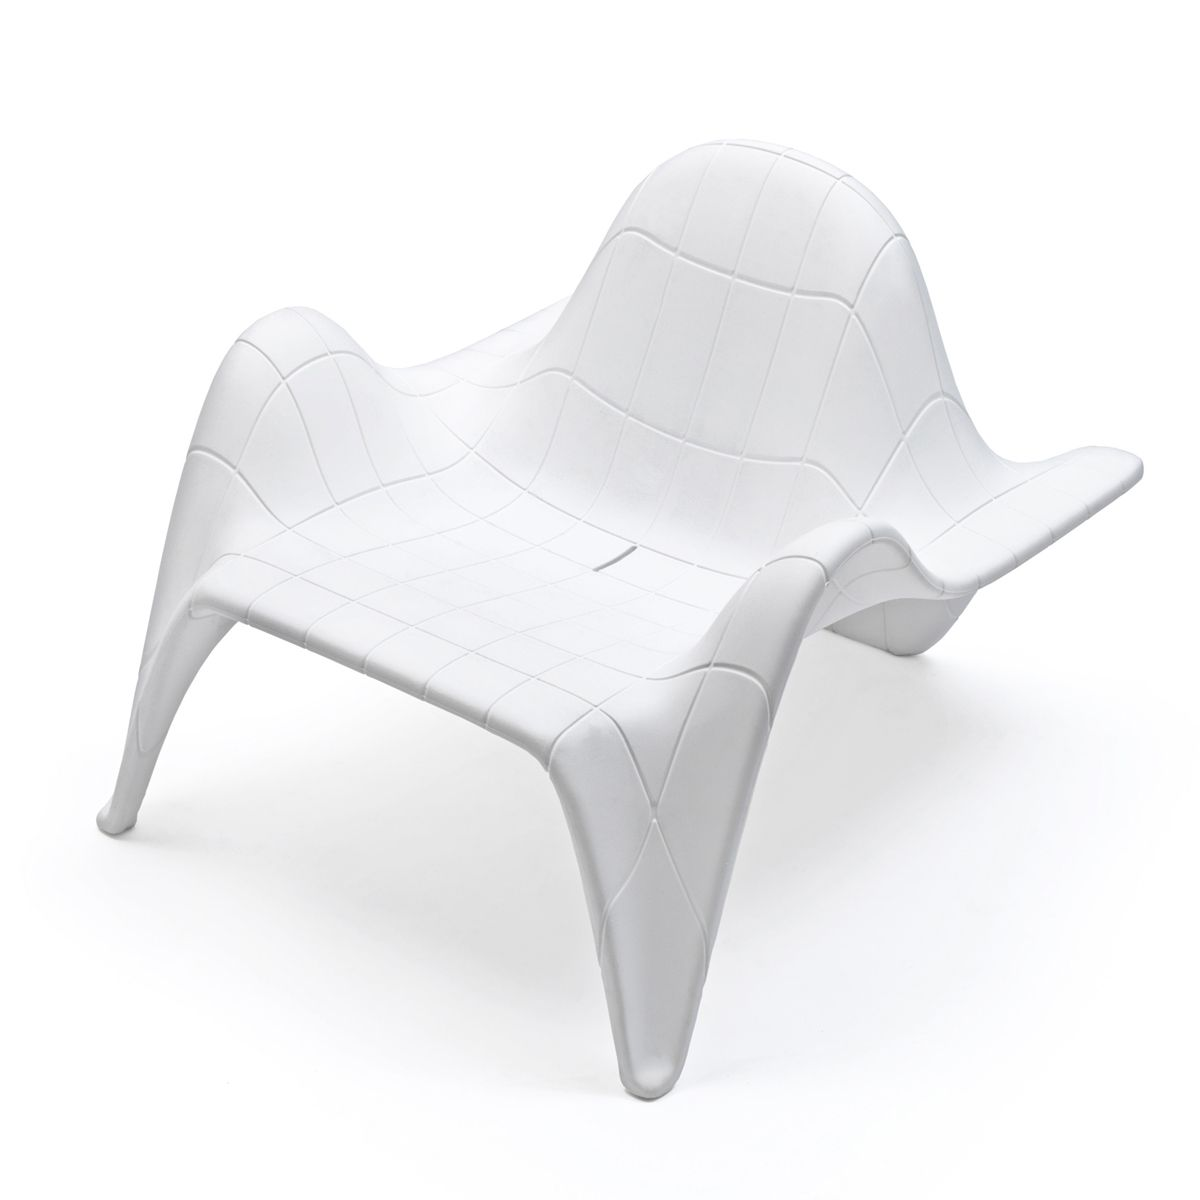 fauteuil exterieur design de jardin f3 vondom zendart design. Black Bedroom Furniture Sets. Home Design Ideas